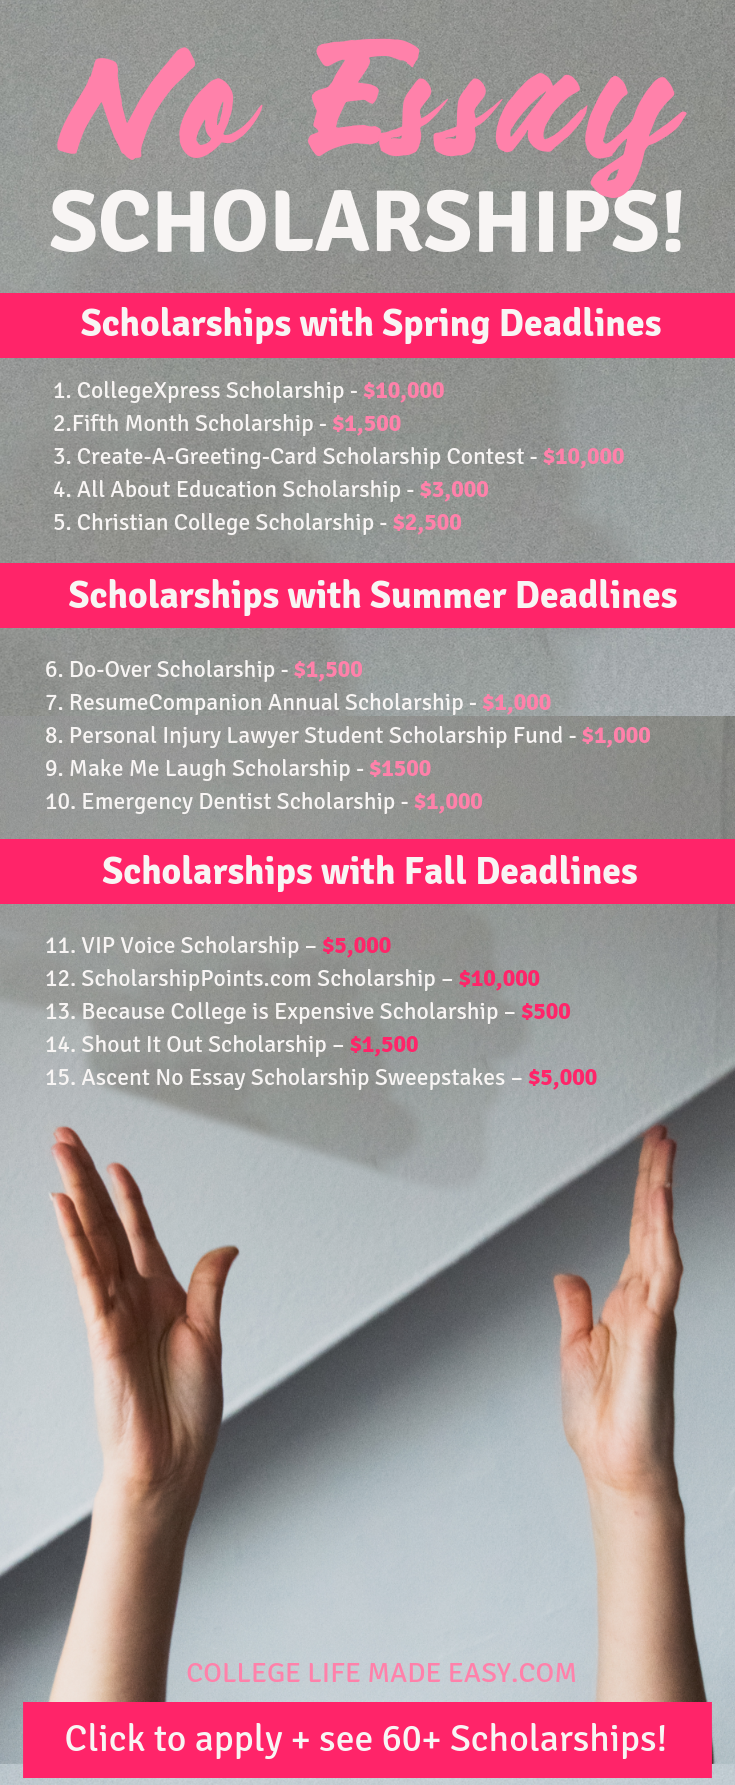 100 No Essay Scholarships Scholarships For College Student Scholarships Scholarships